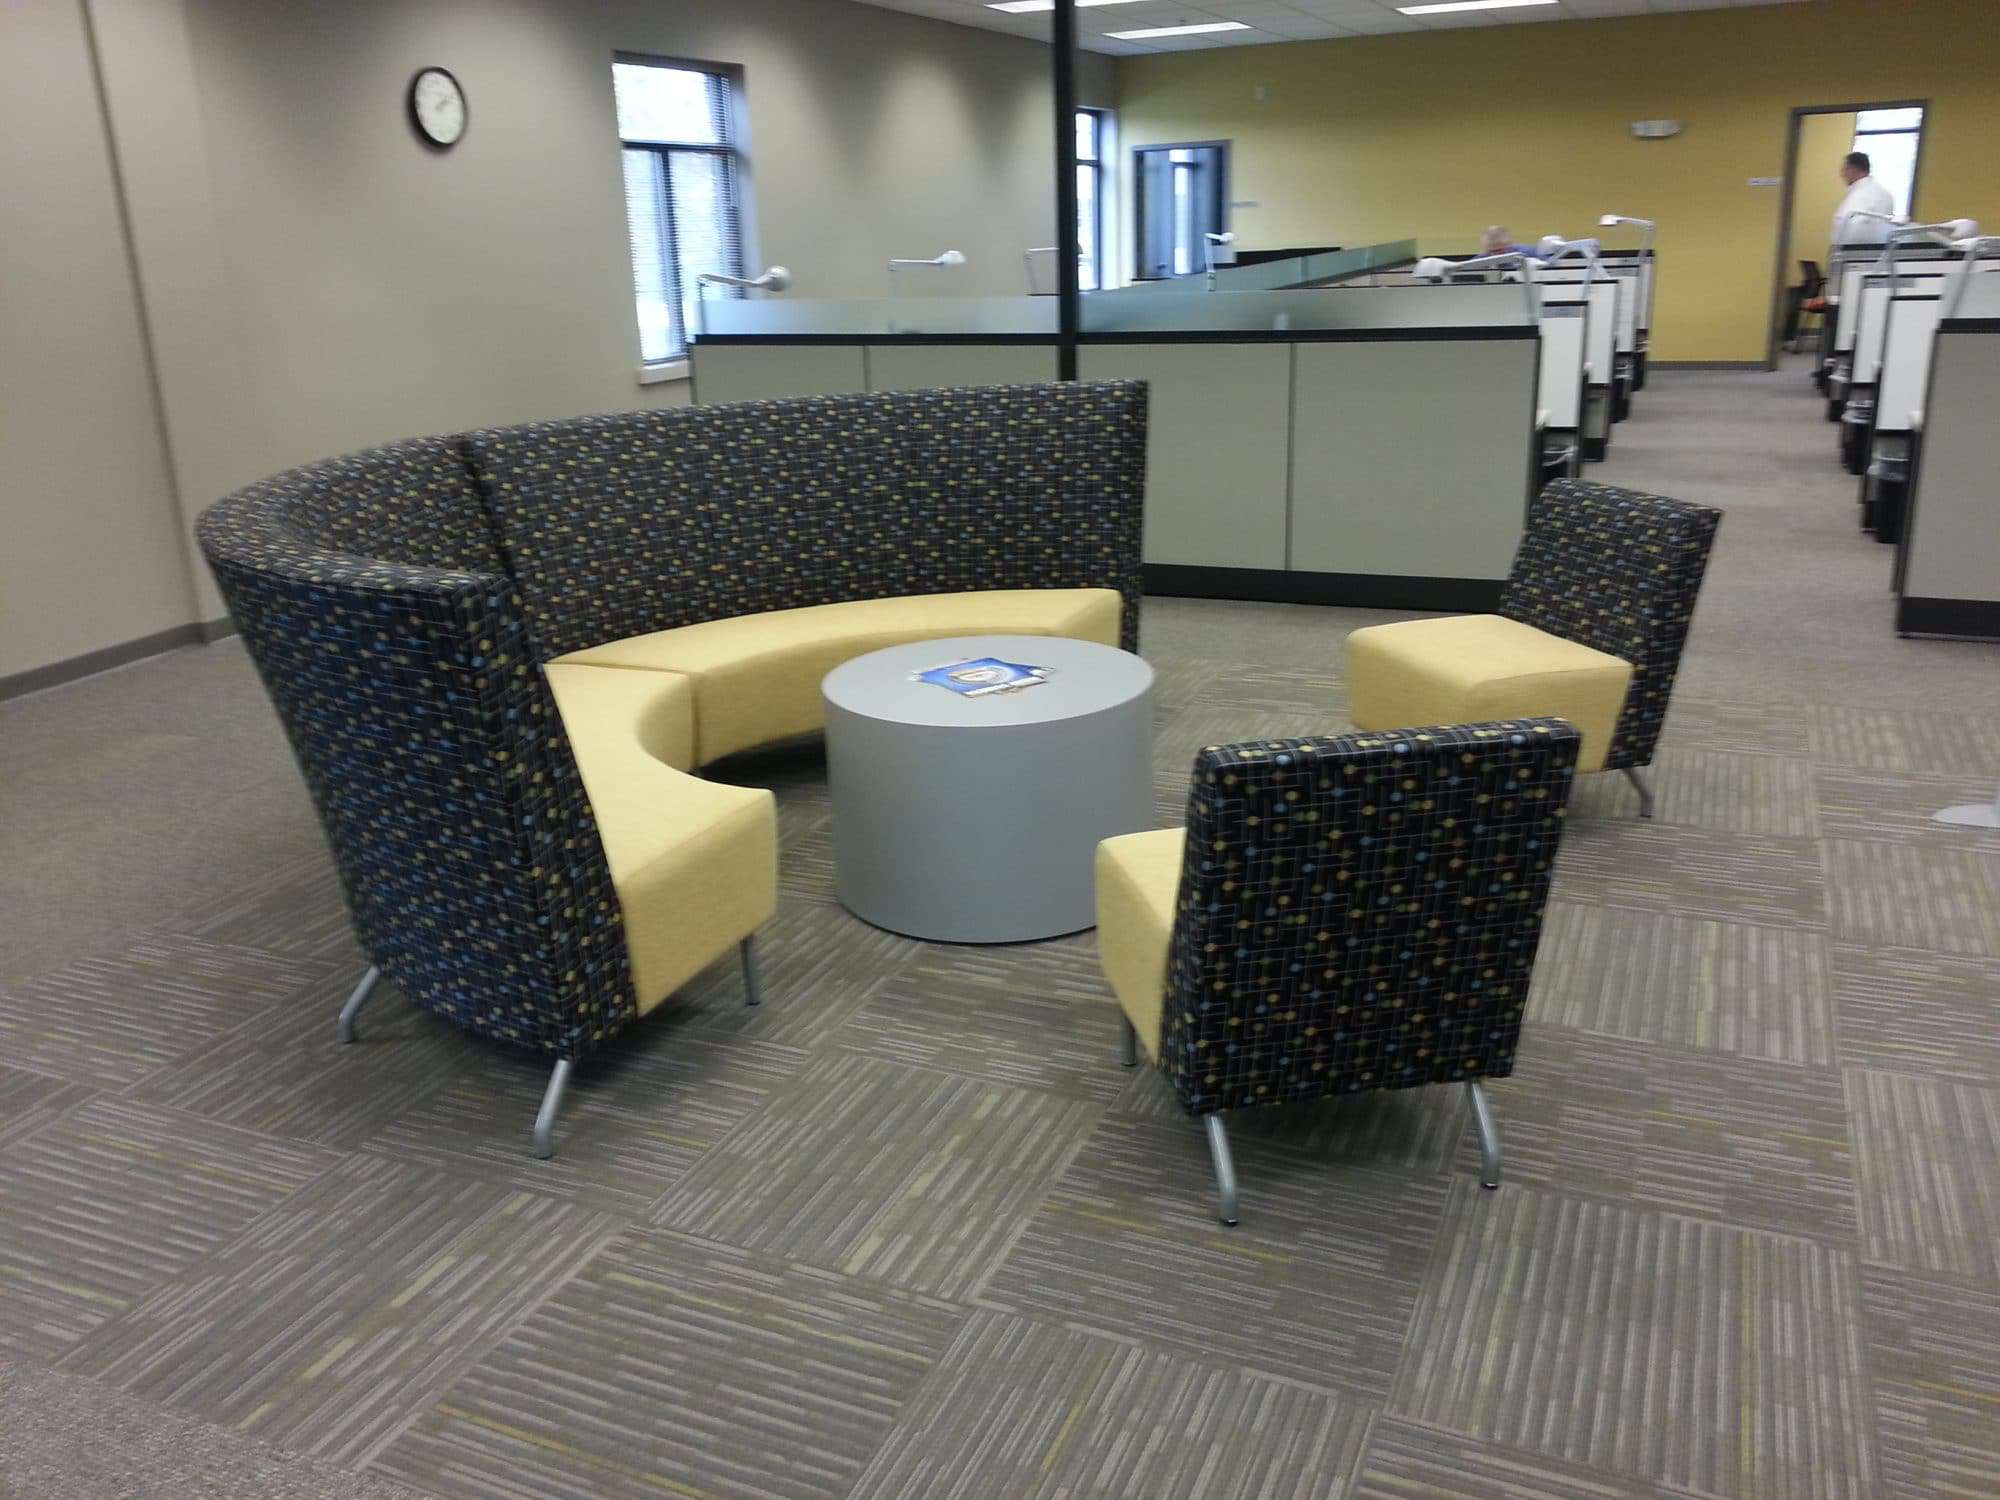 office lounge chairs black spandex chair covers for sale finding privacy in the new open  systems furniture